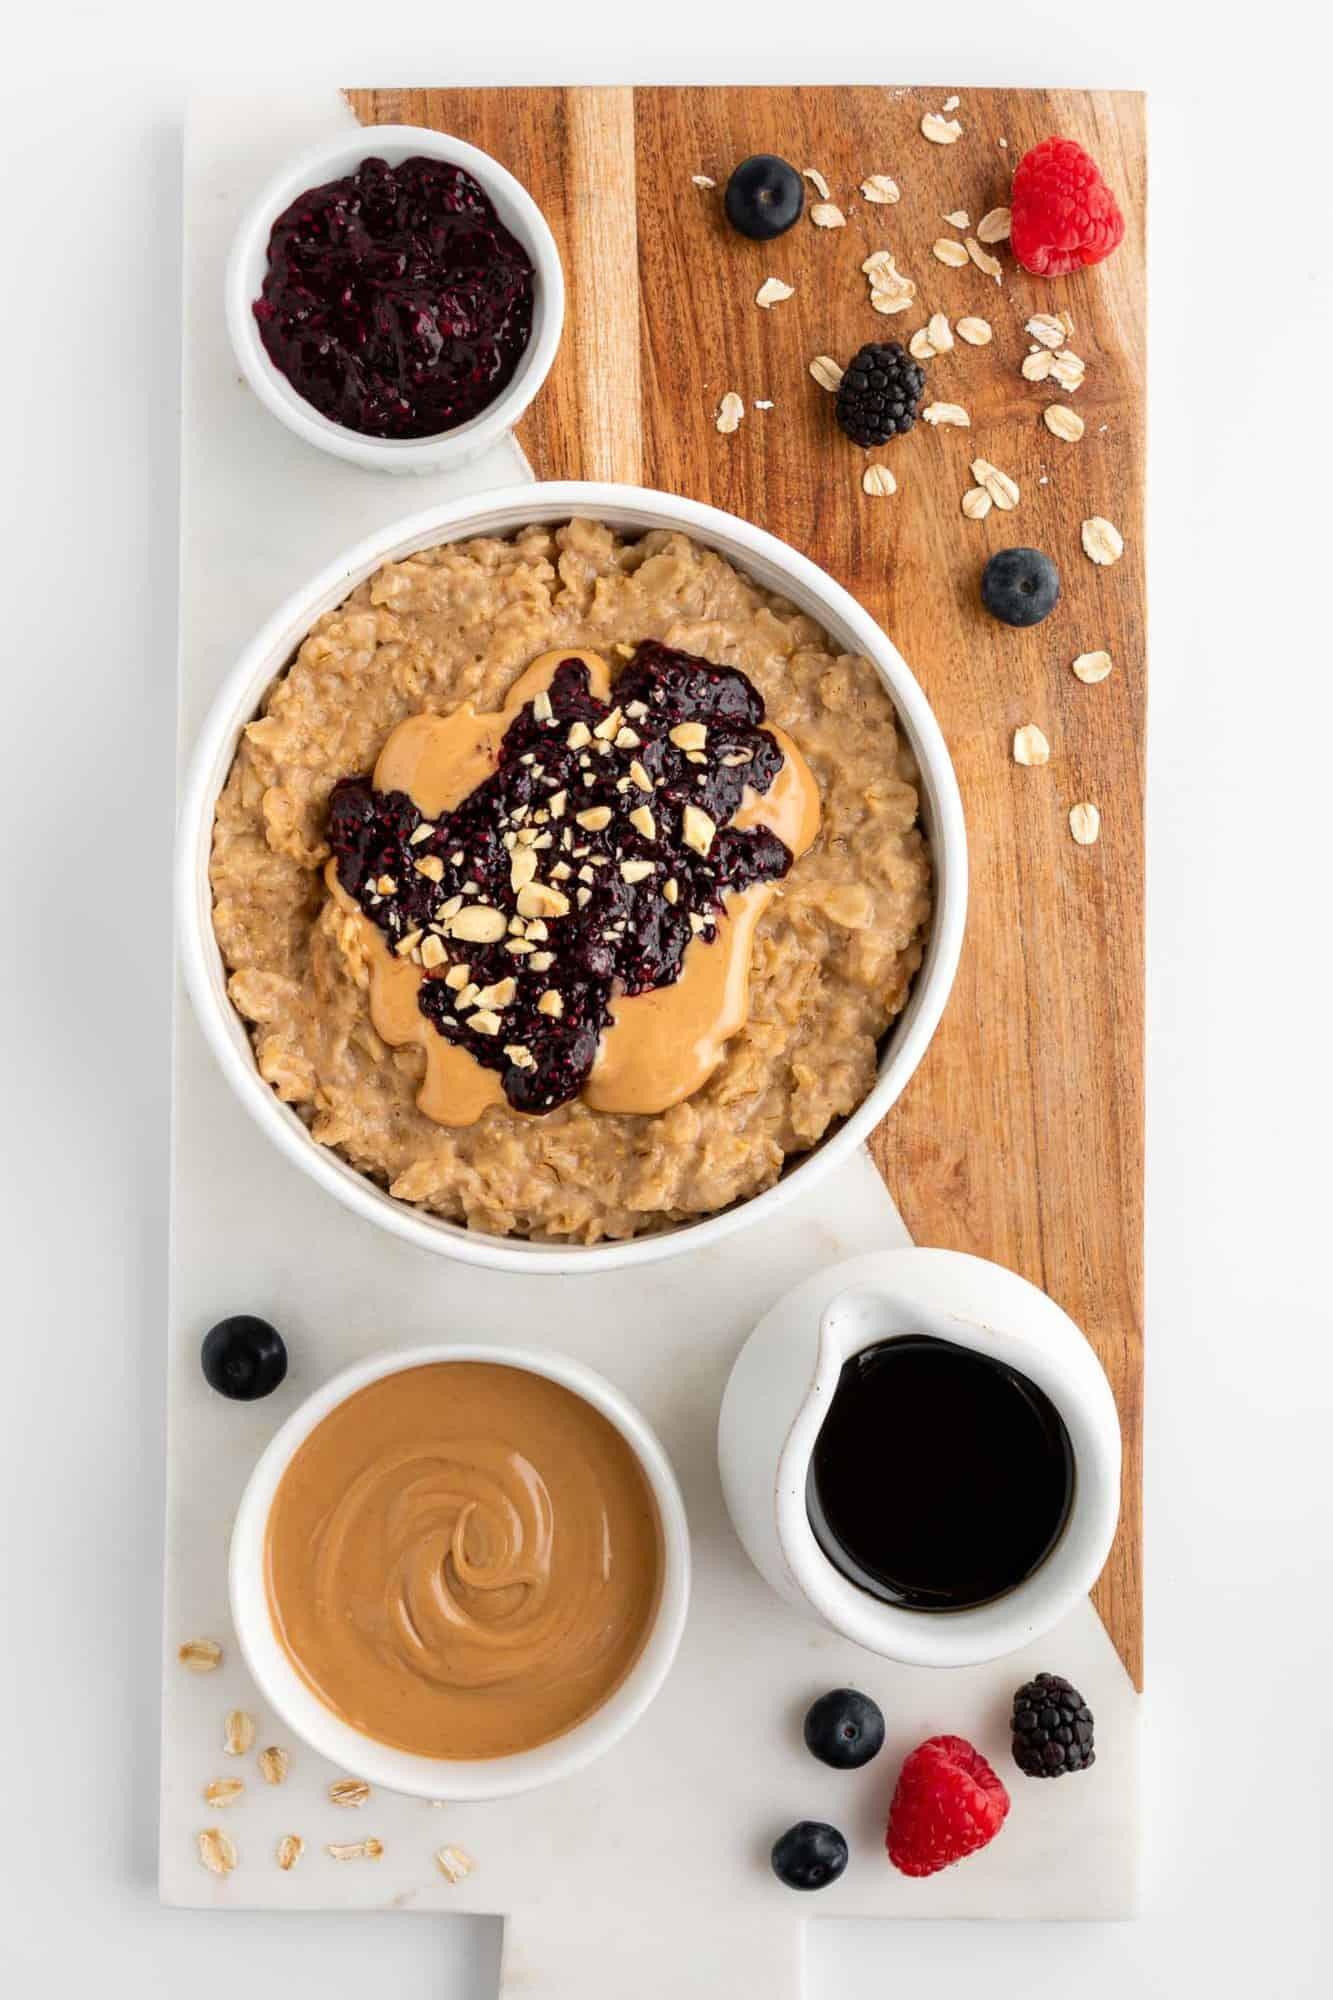 a wood and marble serving board topped with a bowl of pb&j oatmeal, a bowl of peanut butter, maple syrup, fresh berries, and oats